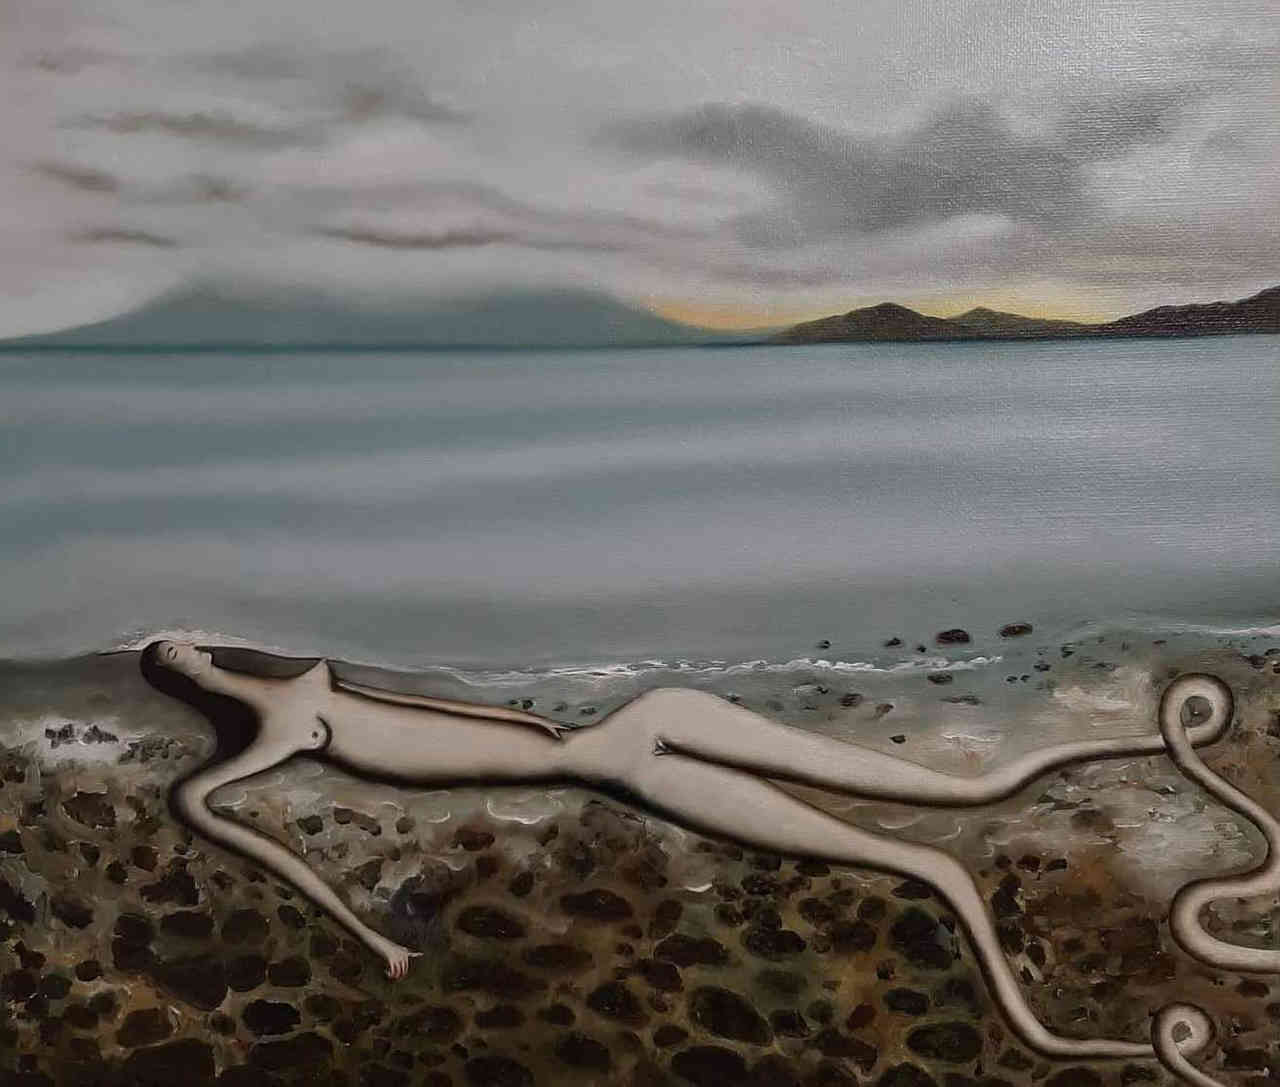 Vangelis Pliarides, Matsiki Beach, 60 x 70 cm, oil on linen, 2019